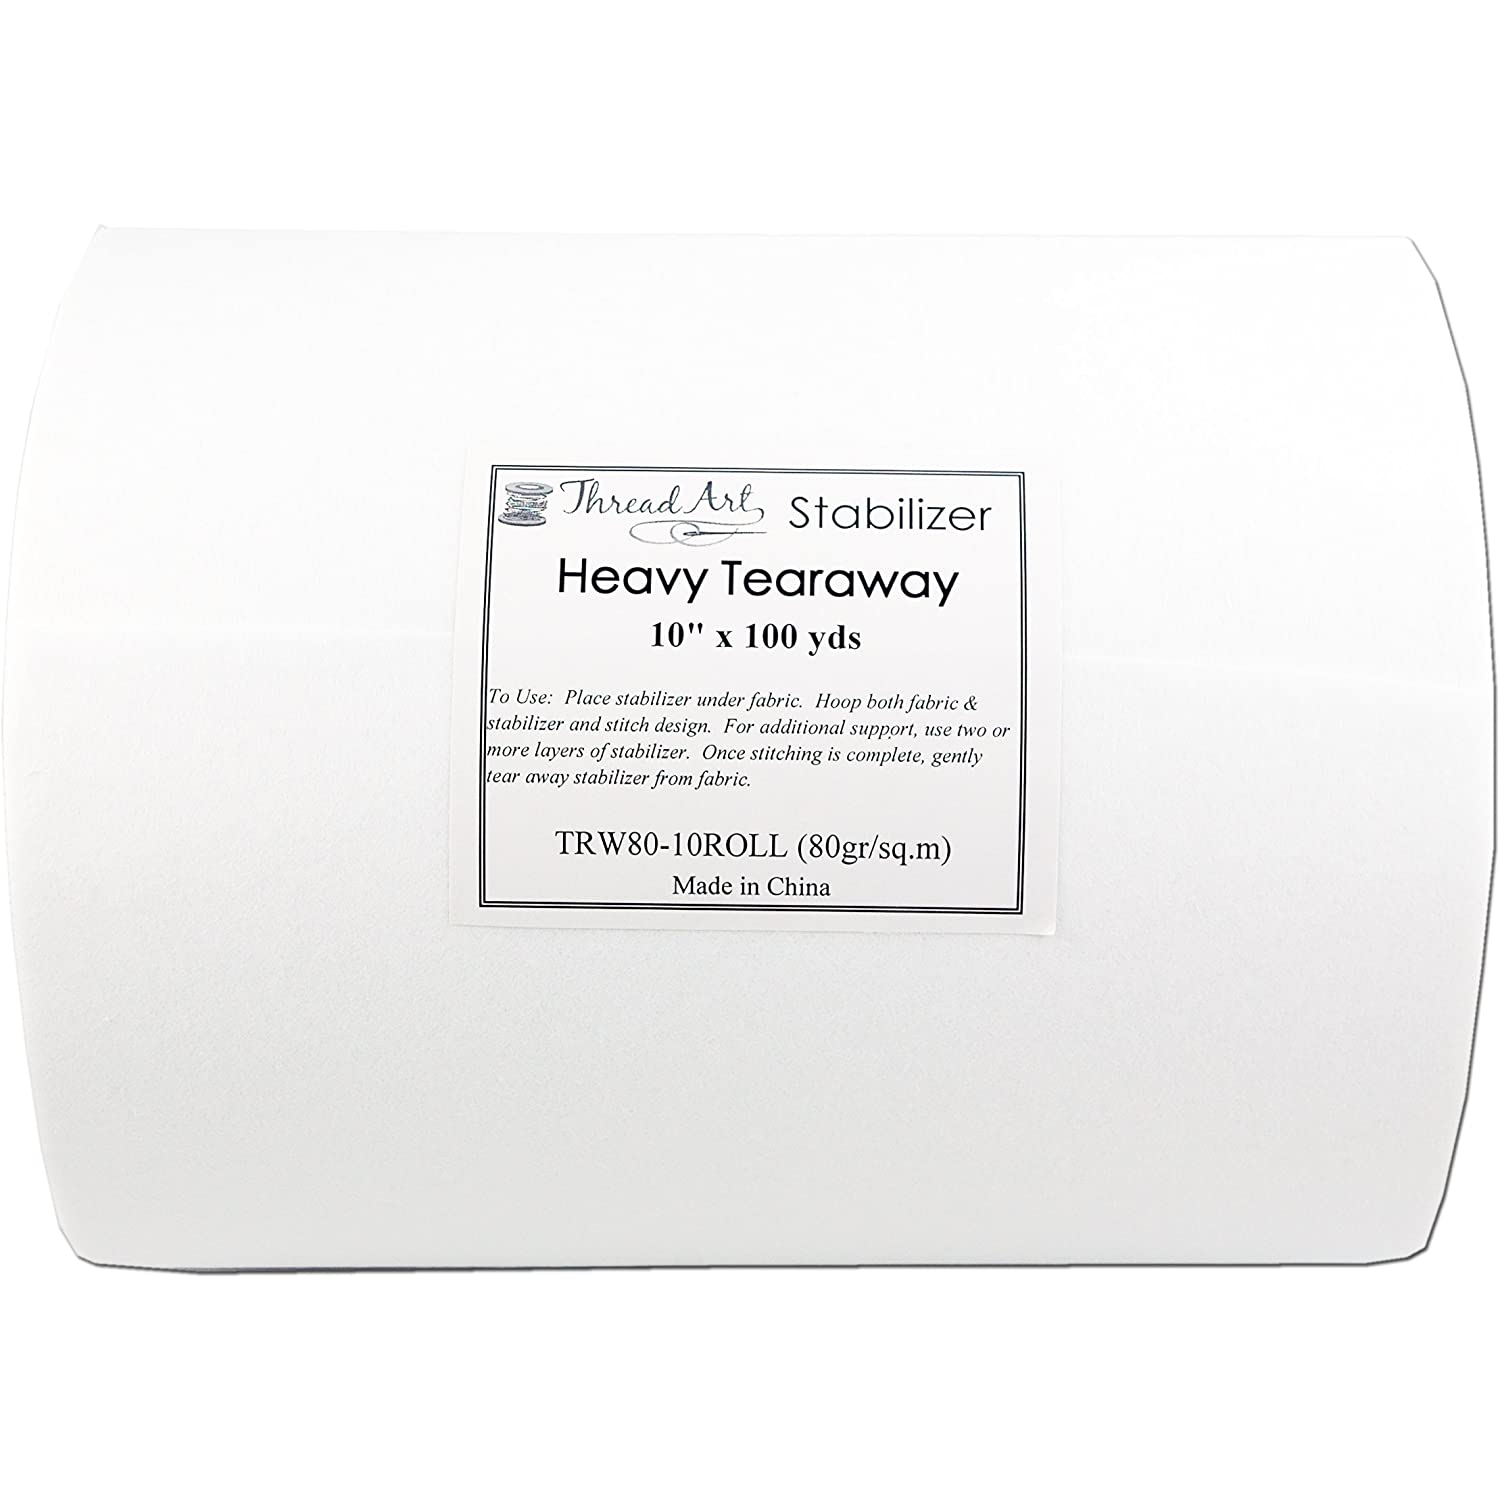 Iron On Tearaway Embroidery Stabilizer - 10 x 100 yd roll - Cutaway/Tearaway/Washaway Available in Rolls and Precut Sheets - by Threadart